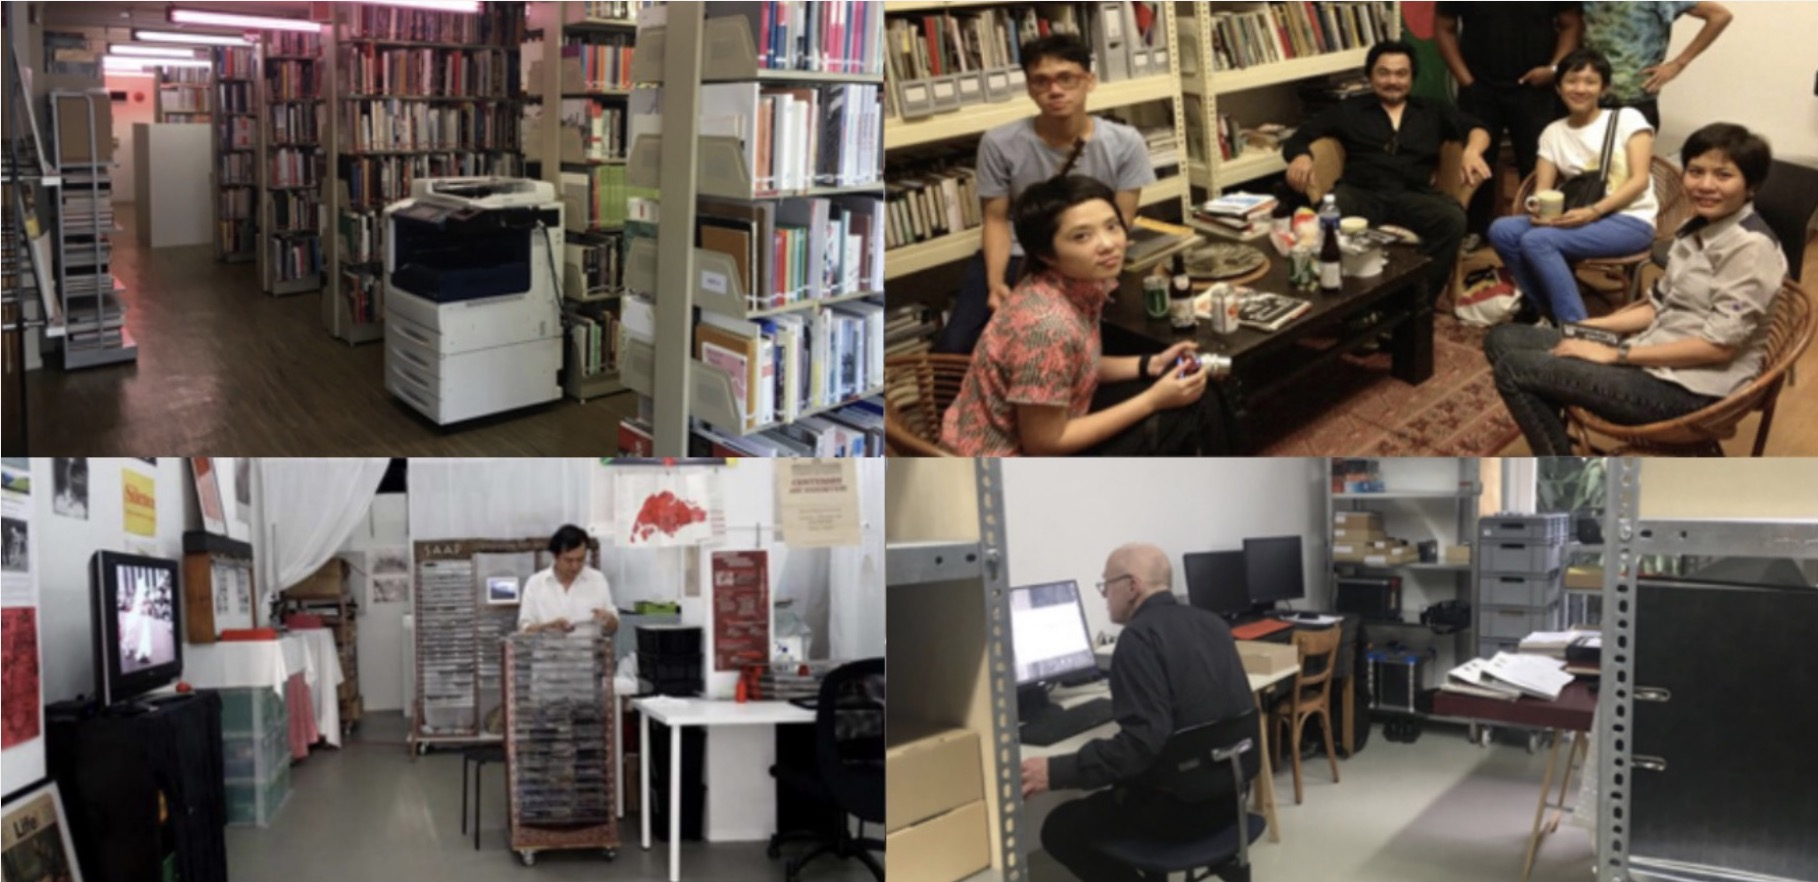 ipamia event 8: インディペンデントのアートアーカイブの意味 Introduction of Independent Art Archives in the world